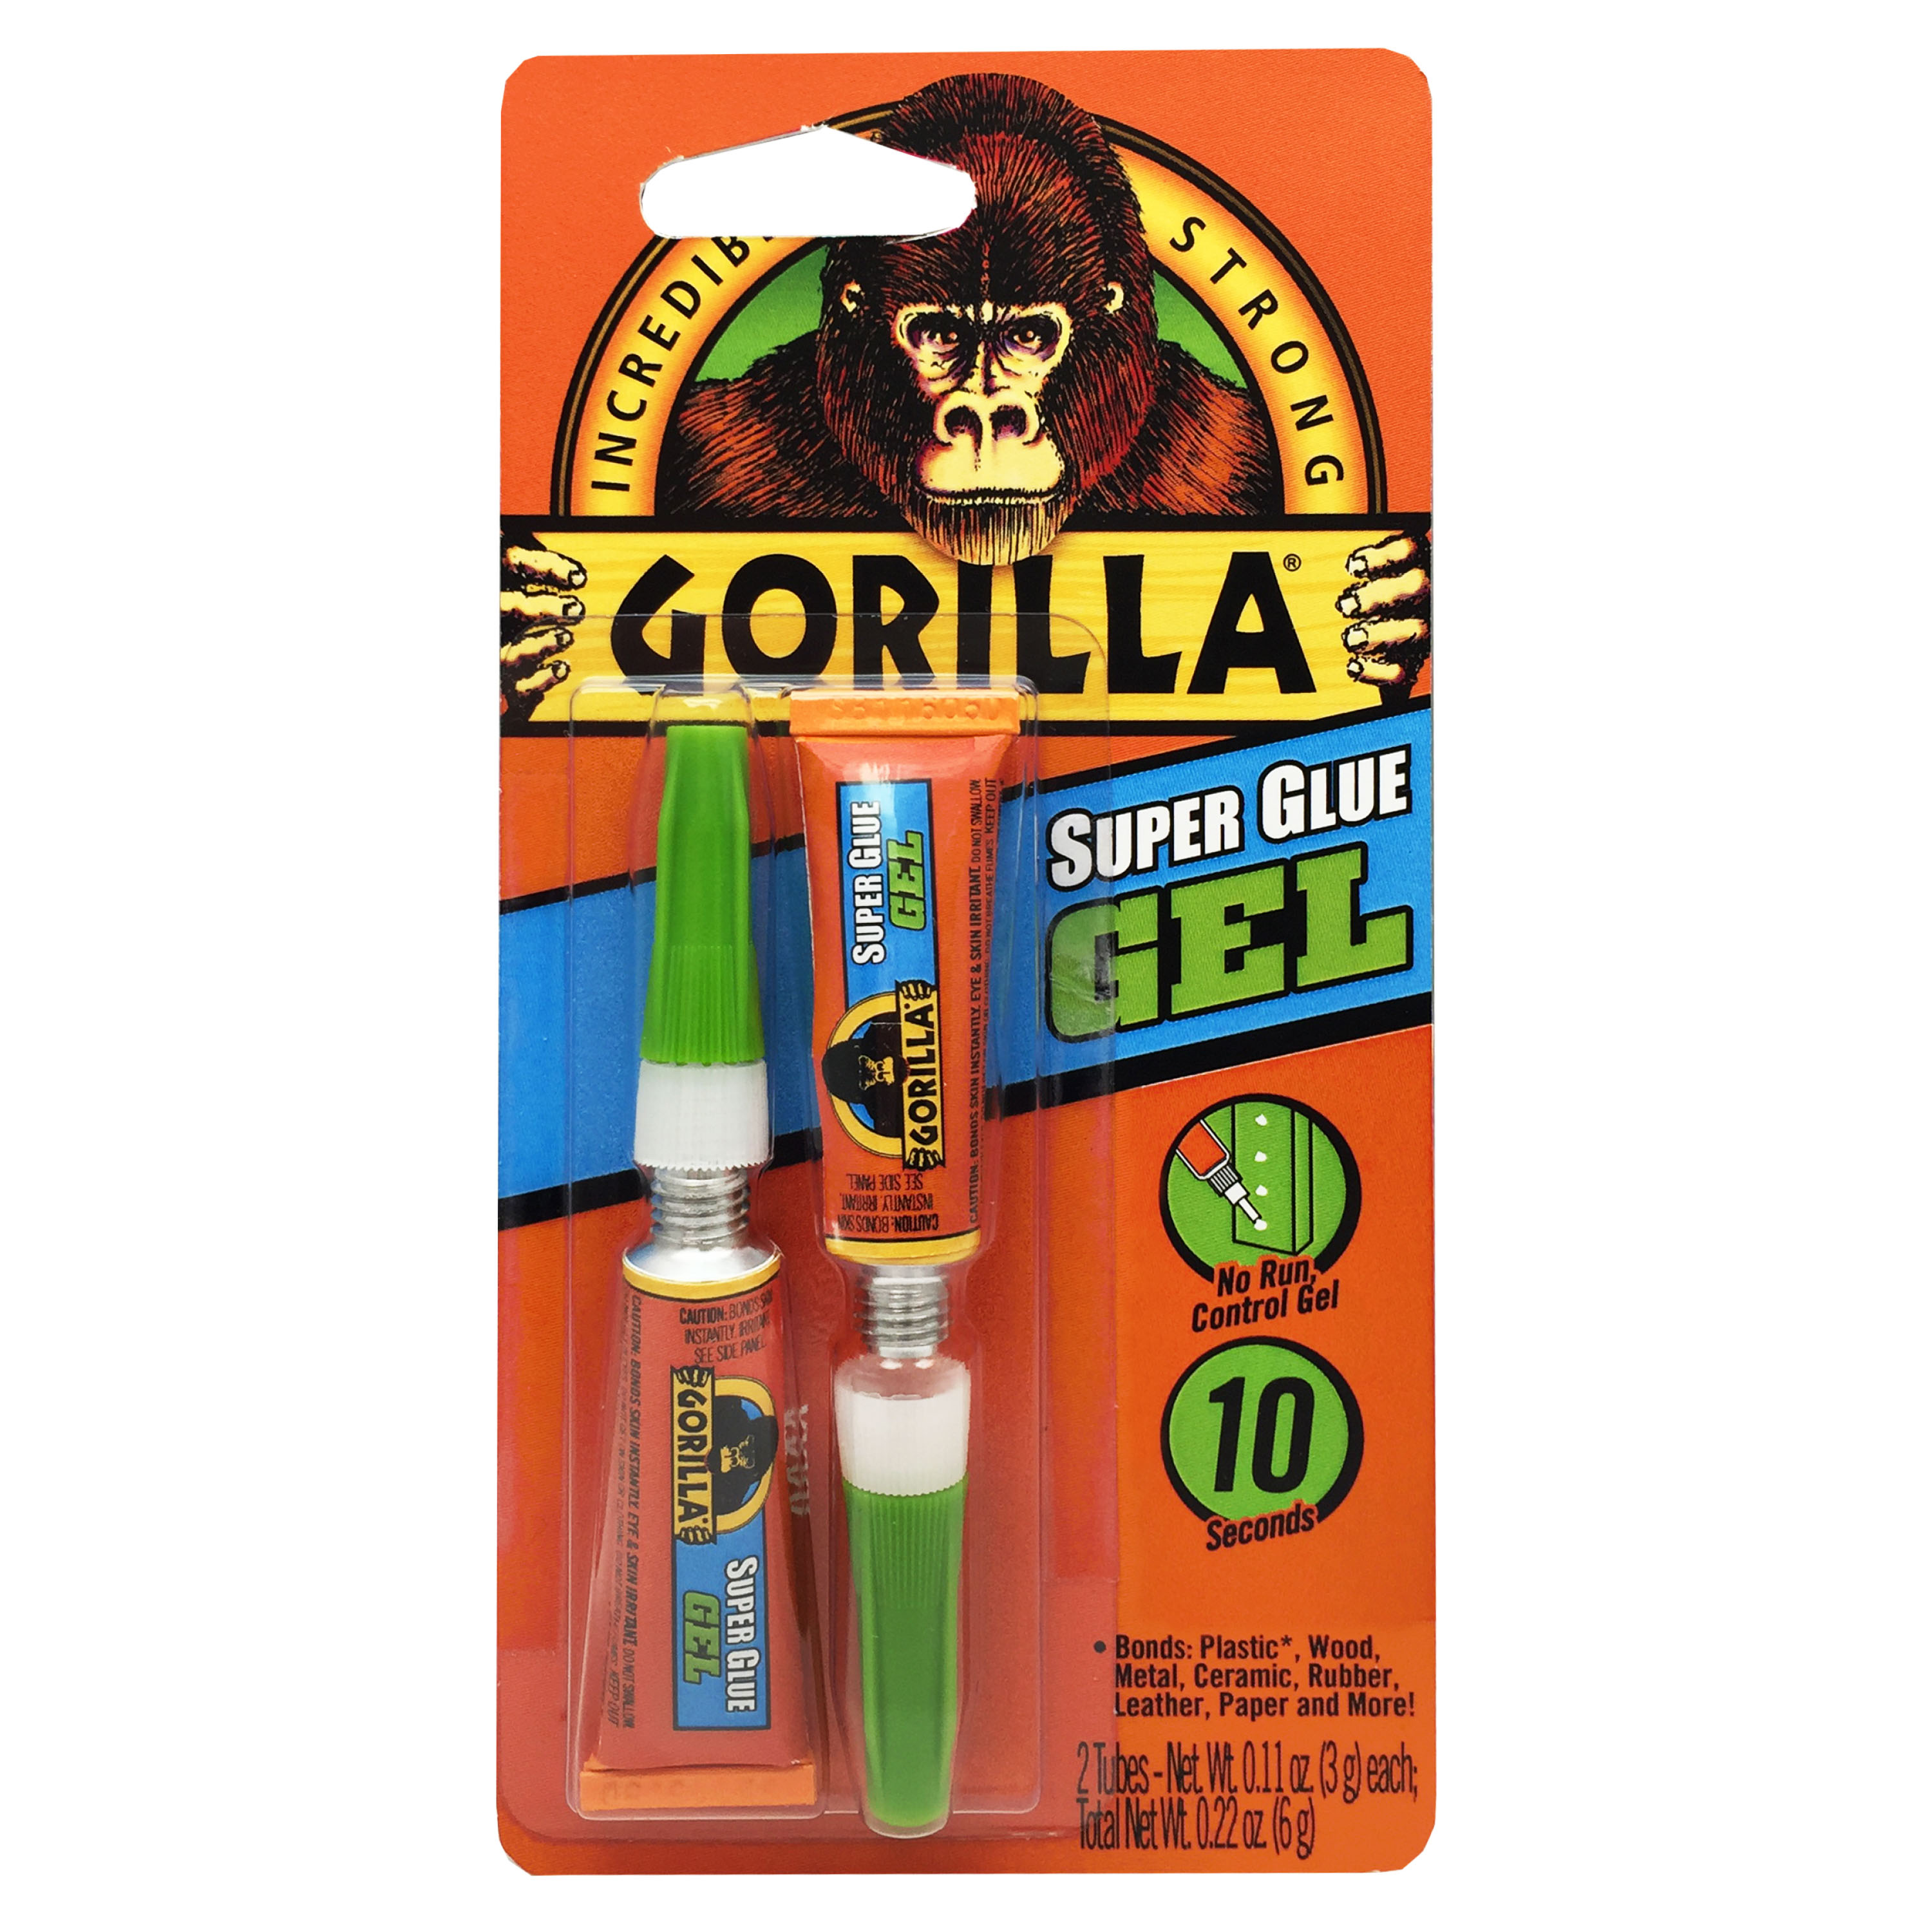 Gorilla Super Glue Gel, 3g